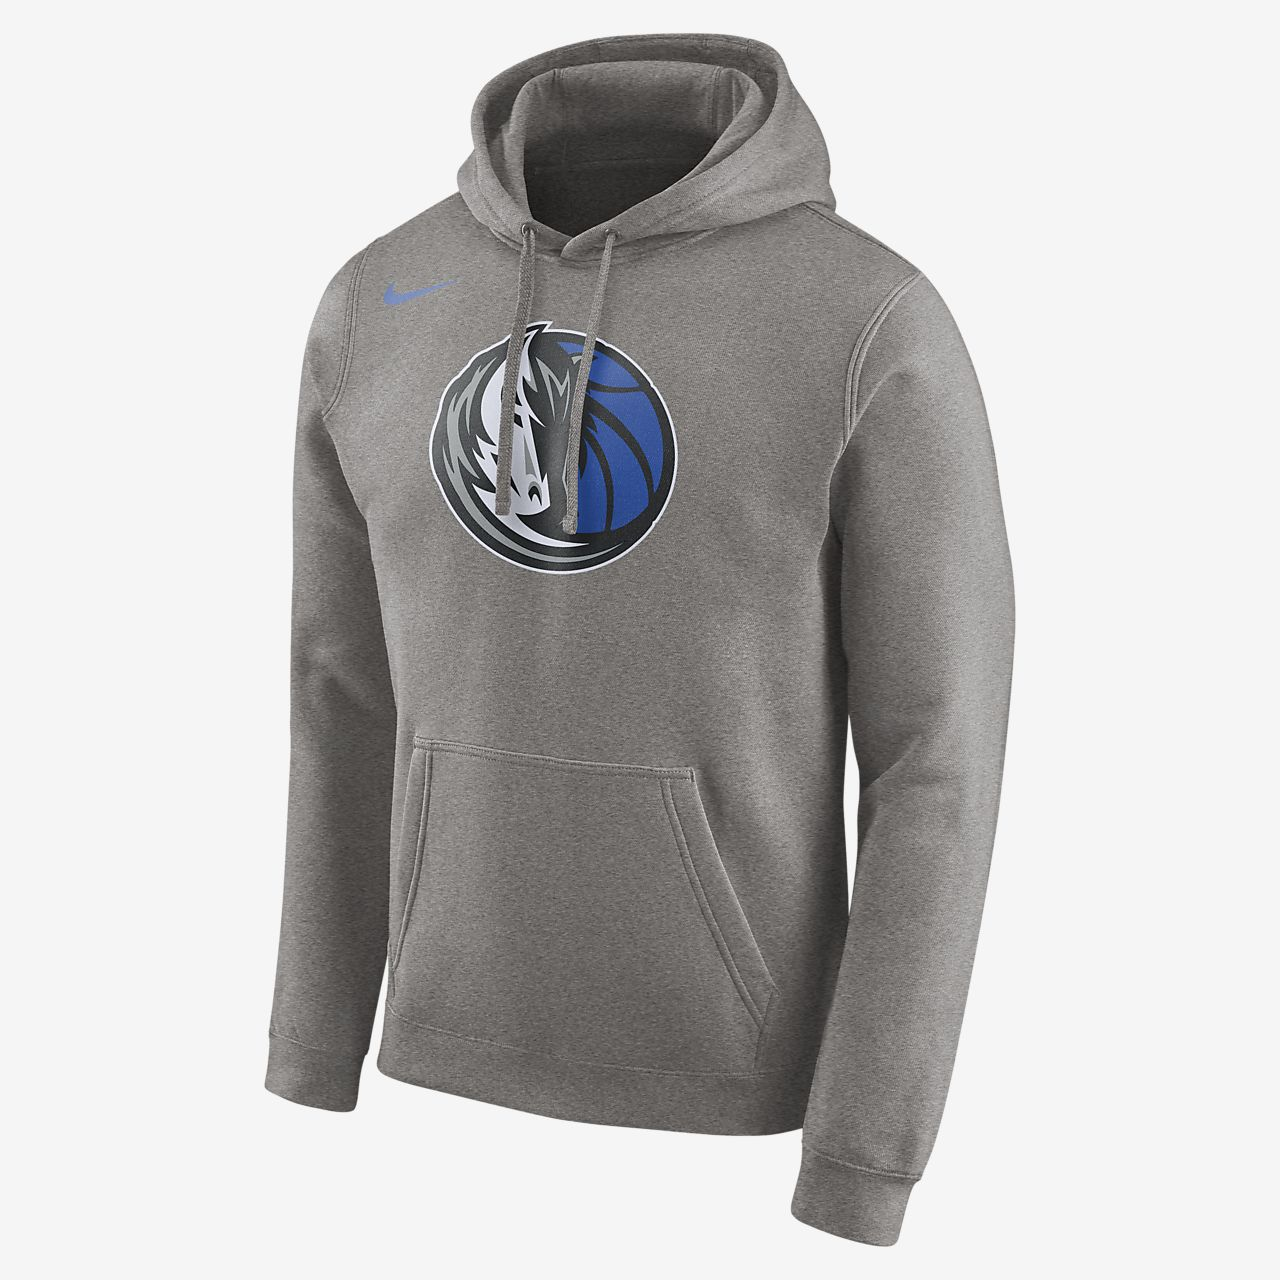 Dallas Mavericks Nike Men's Fleece NBA Hoodie